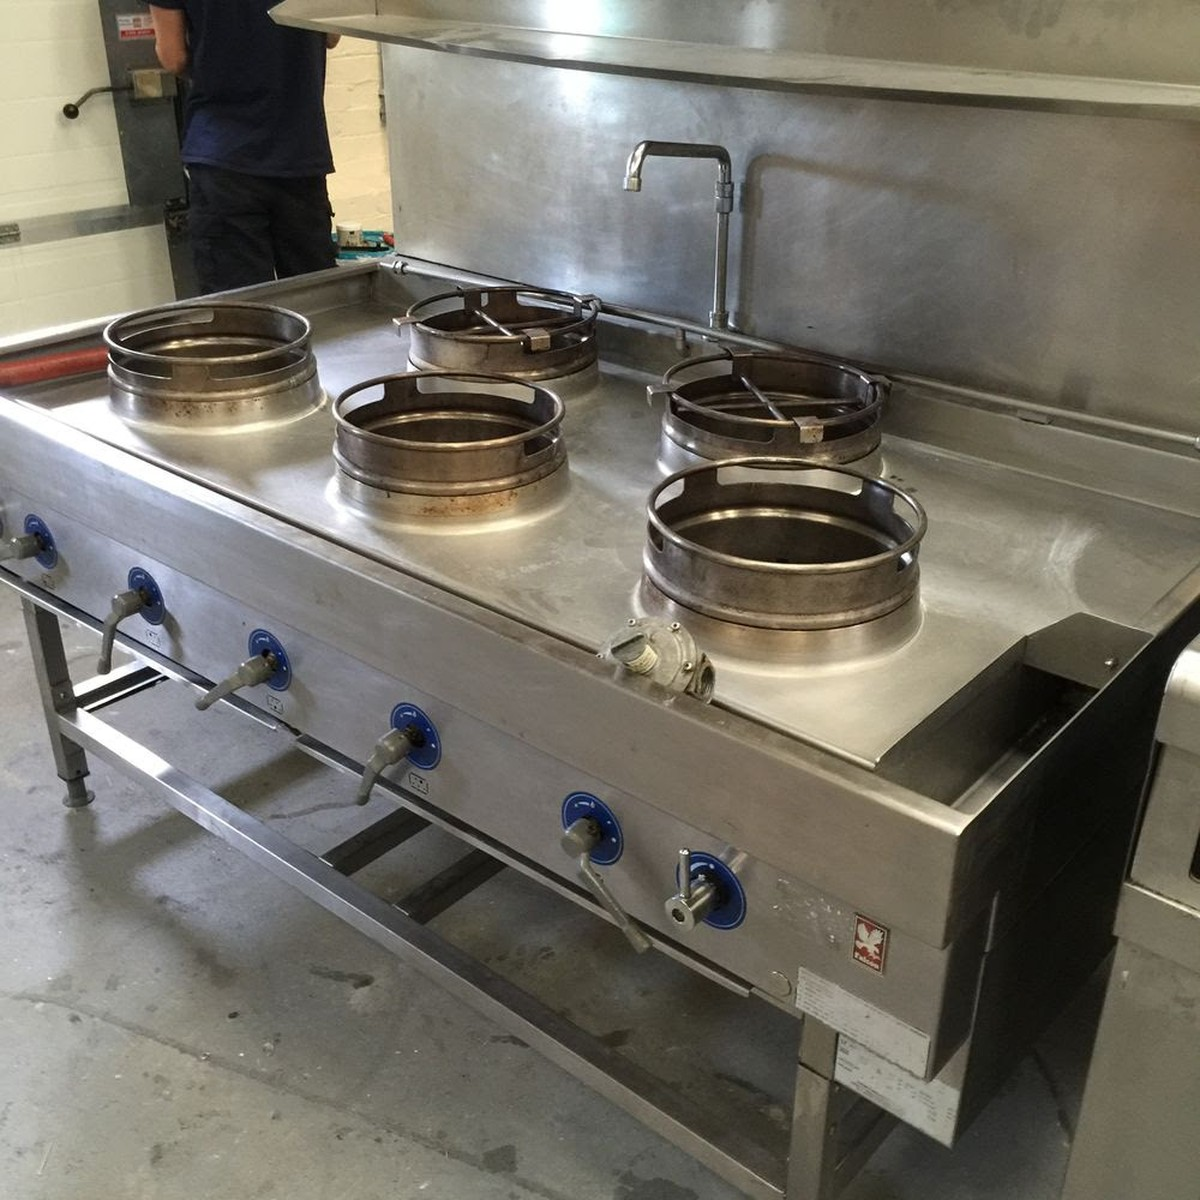 Secondhand Catering Equipment Wok Cooker Chinese